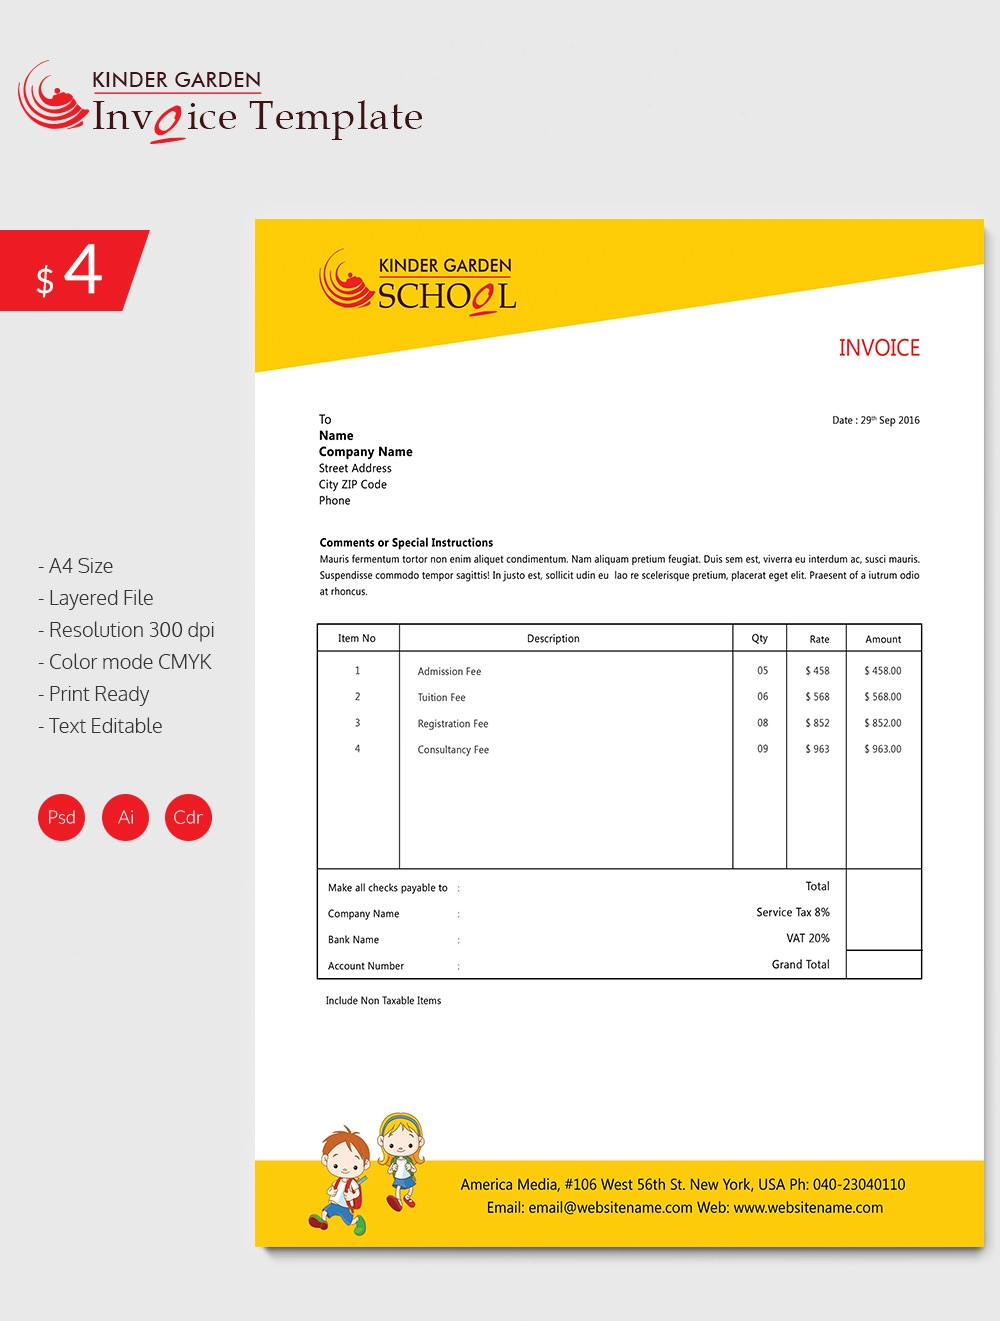 invoice template 41 free word excel pdf psd format download best invoice templates